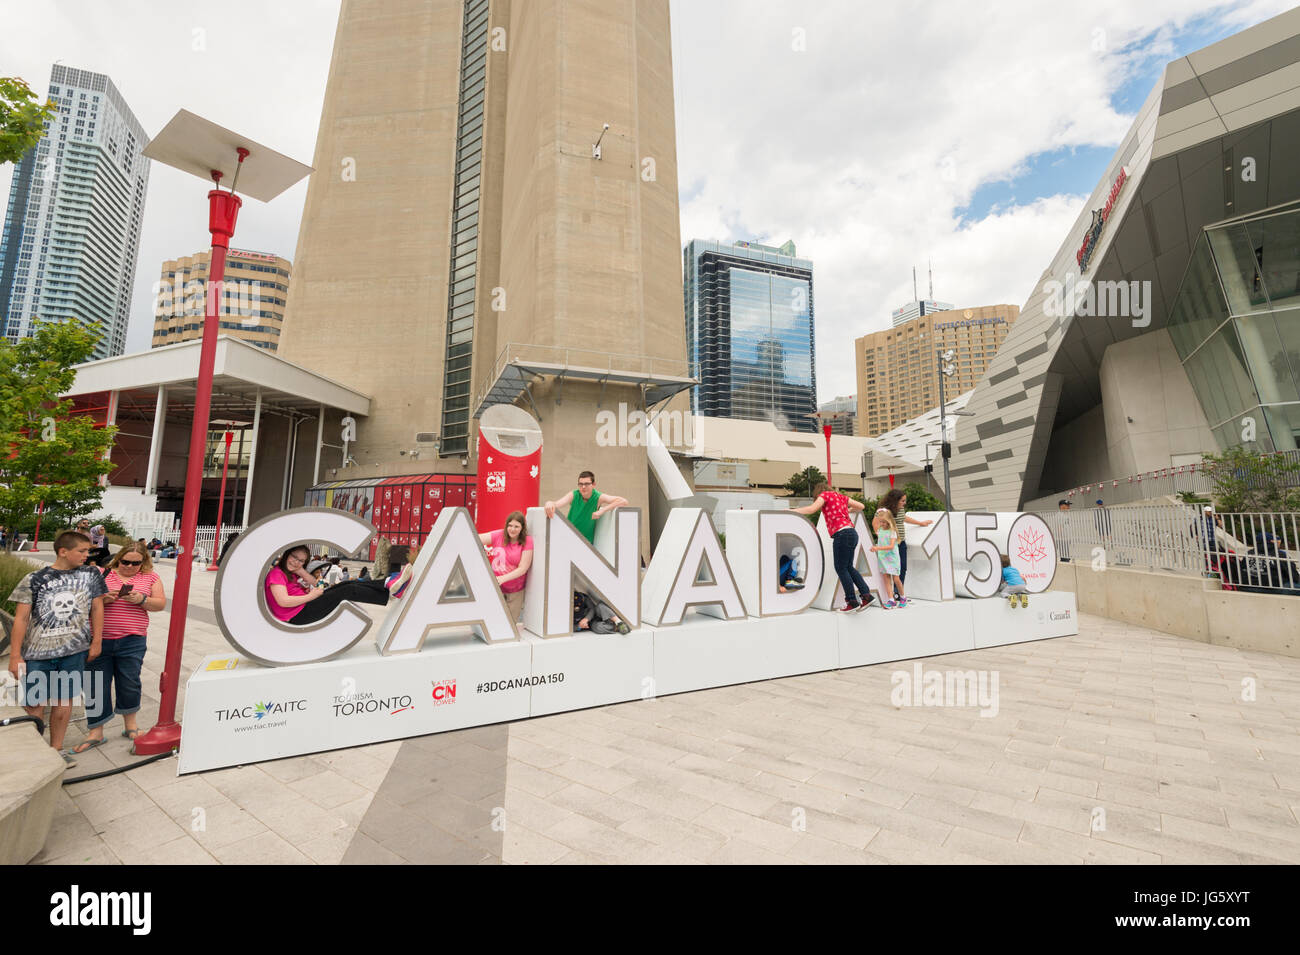 Toronto, Canada - 26 June 2017: Canada 150 sign at the bottom of CN tower - Stock Image